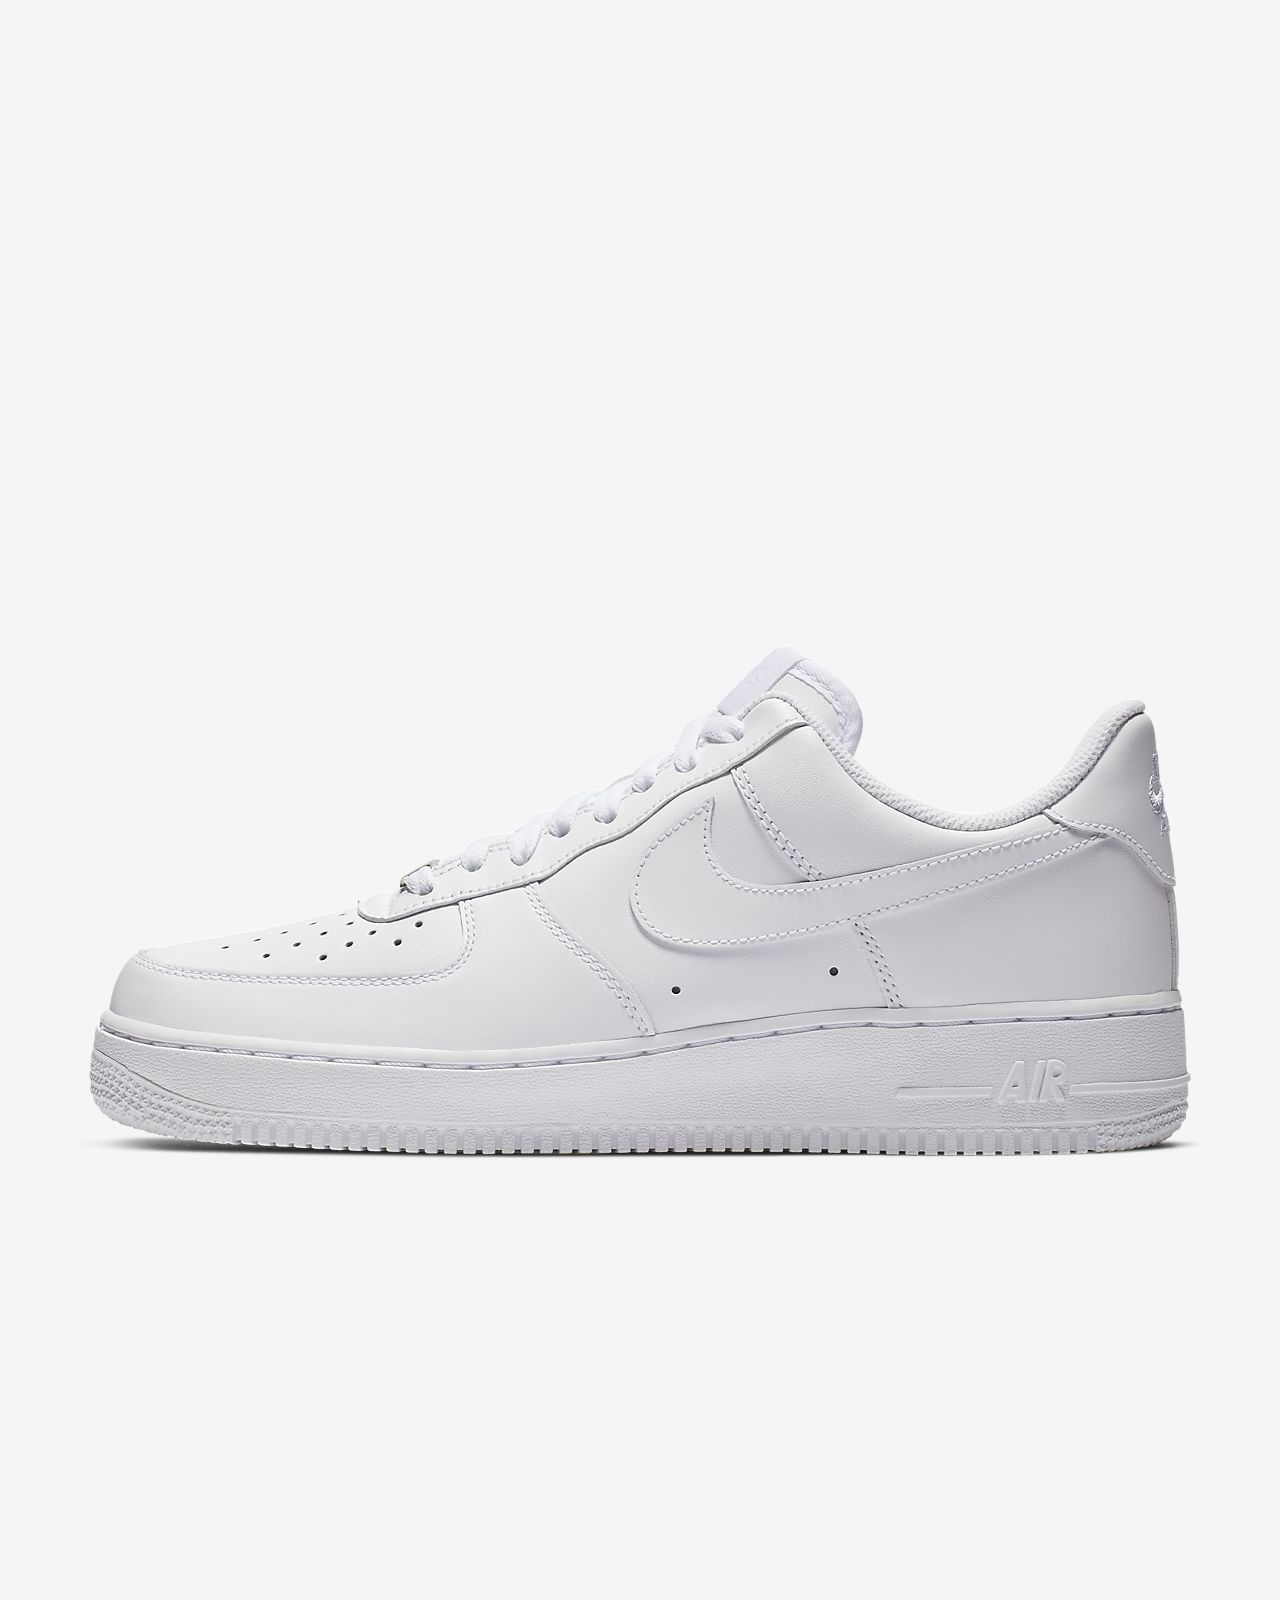 Force 1 Damenschuh Air Nike '07 HD92IE